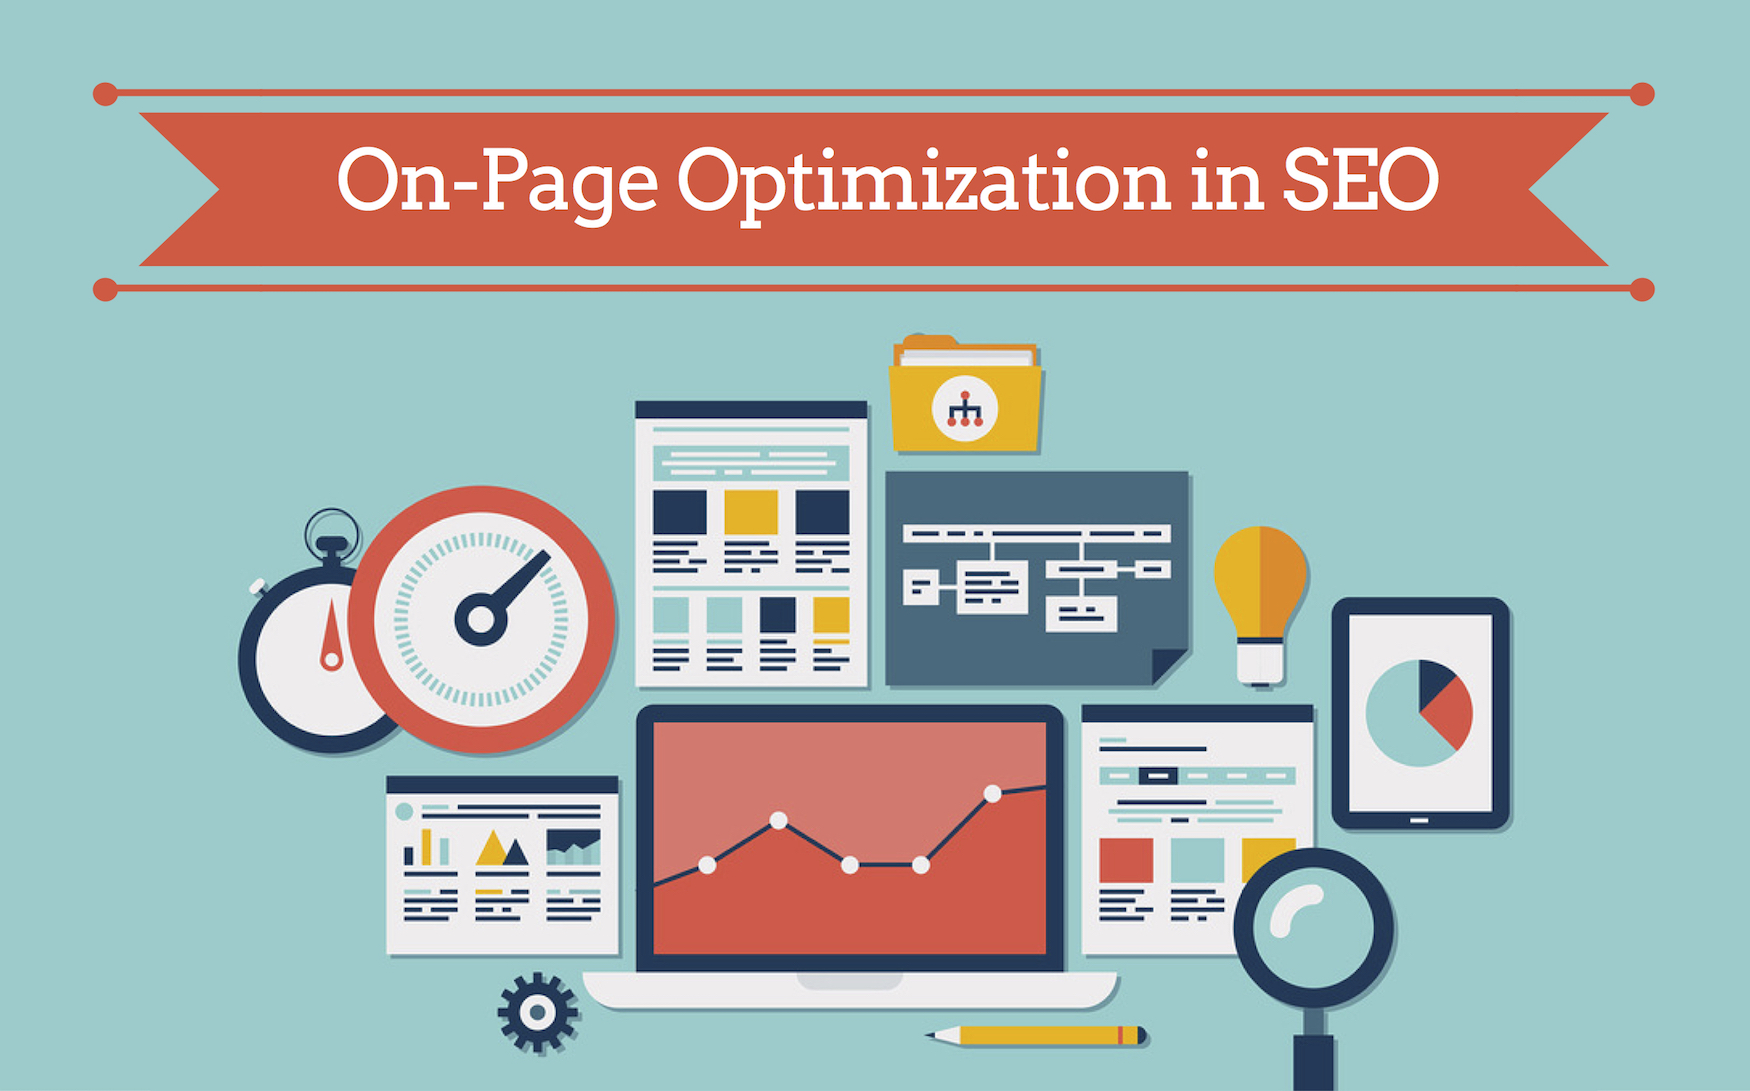 Onpage Content Optimization in SEO